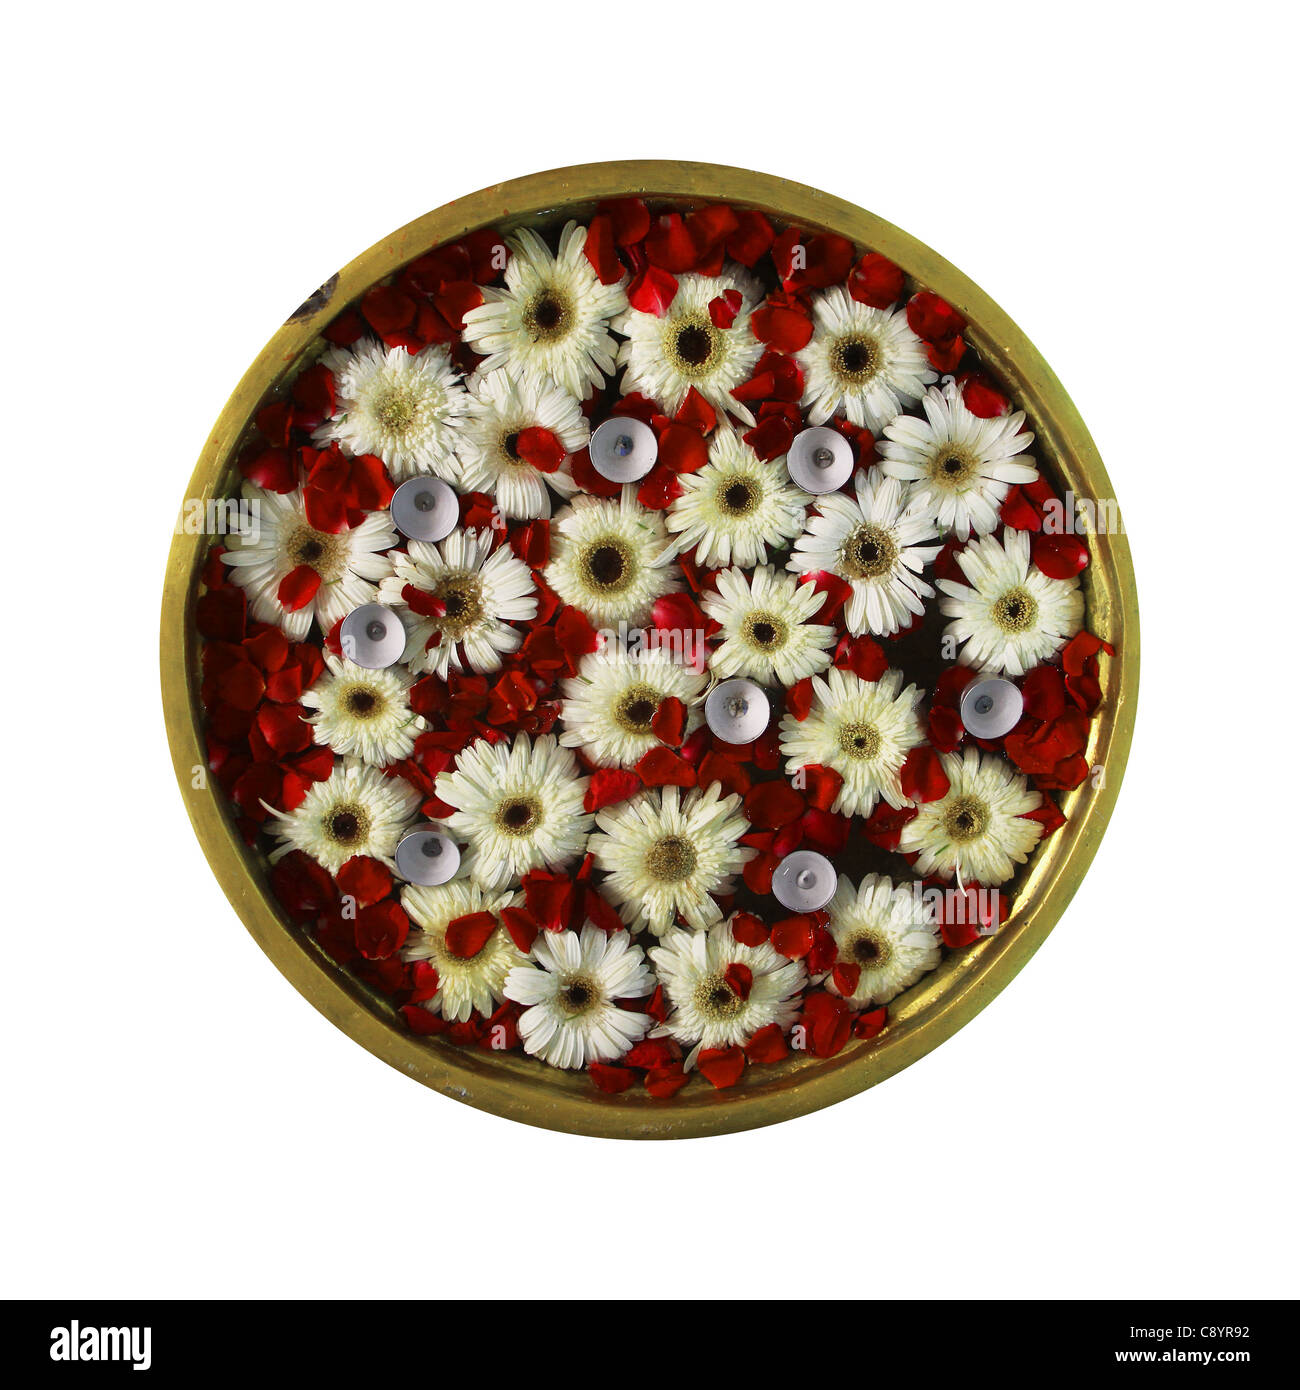 flowers arrangement floating on water in vessel - Stock Image